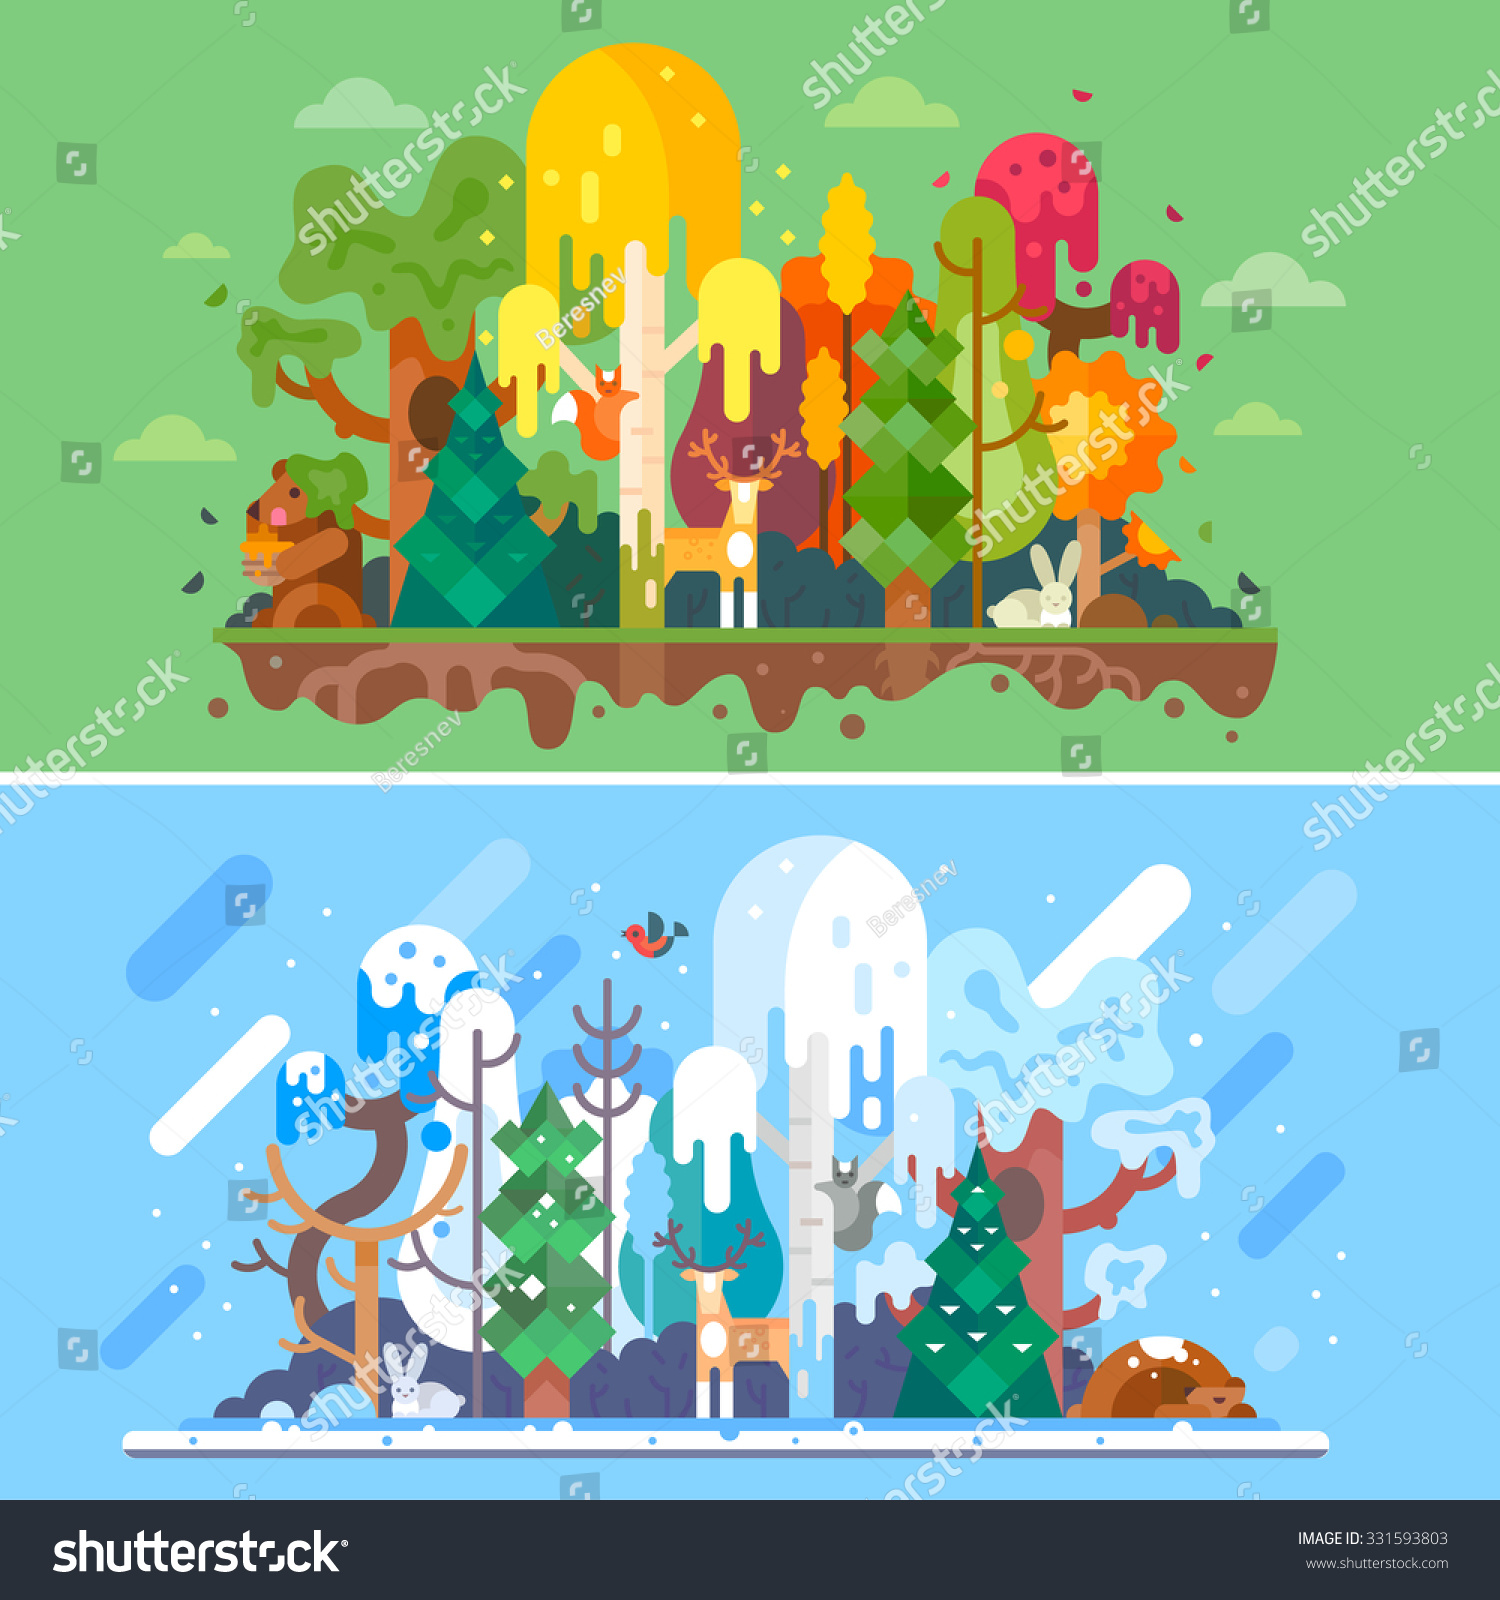 Autumn and winter forest landscapes with same animals Seasons autumn trees withs yellow and red-colored leaves winter snowbound trees rabbit hare bear squirrel deer Flat vector illustration